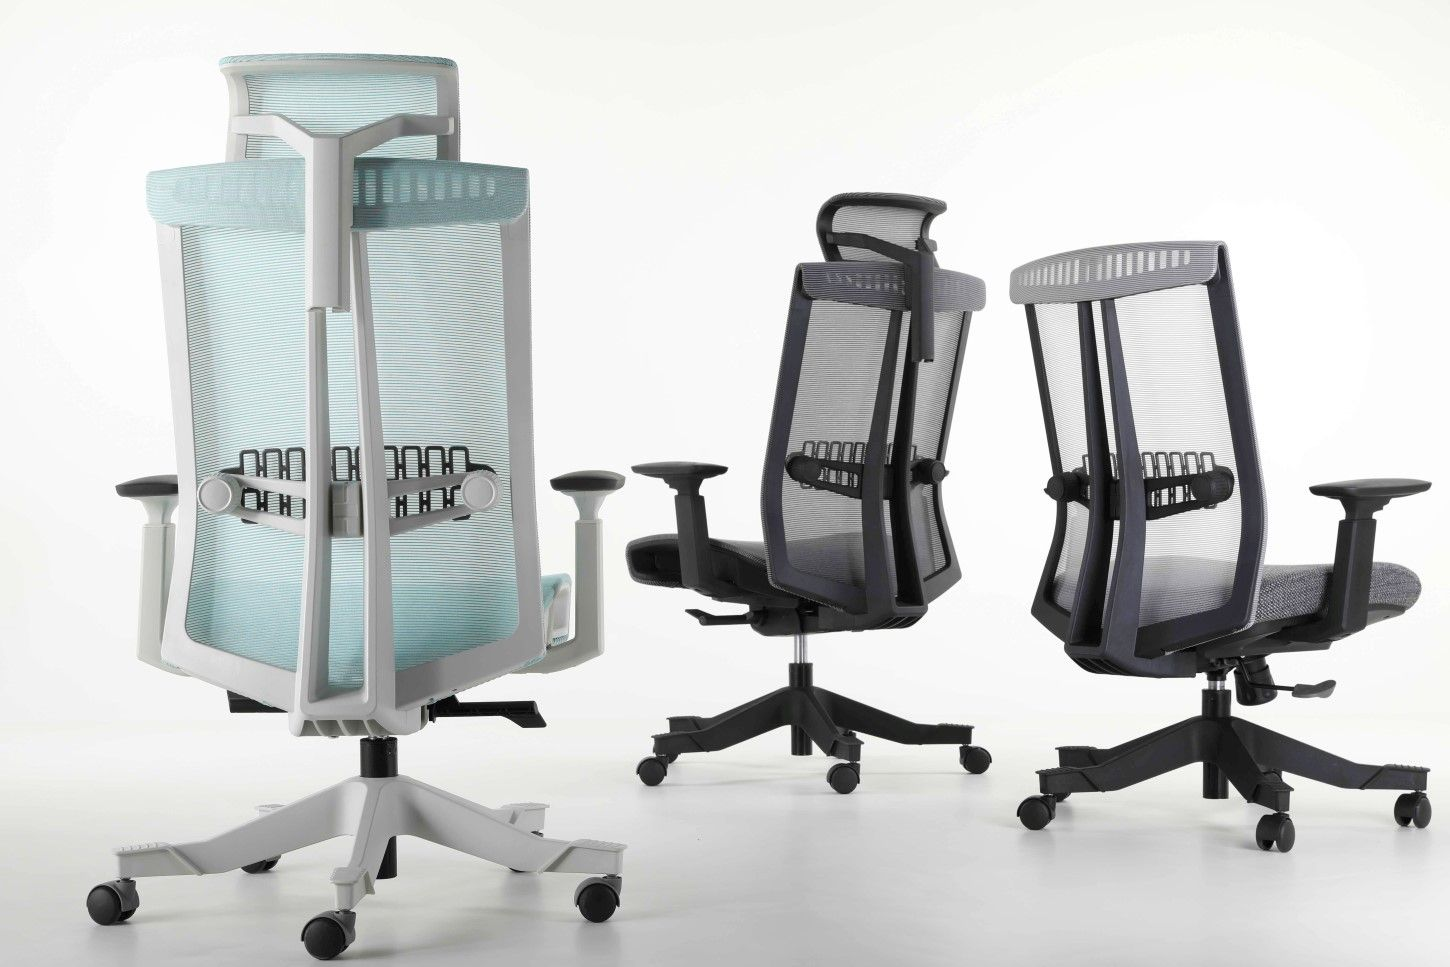 <b>MESH OFFICE CHAIRS KEEP YOU COOL AND COMFY MAKING YOU MORE PRODUCTIVE. OVER 130 MODELS INCLUDING COMPUTER CHAIR AND ERGONOMIC OFFICE CHAIRS:</b>